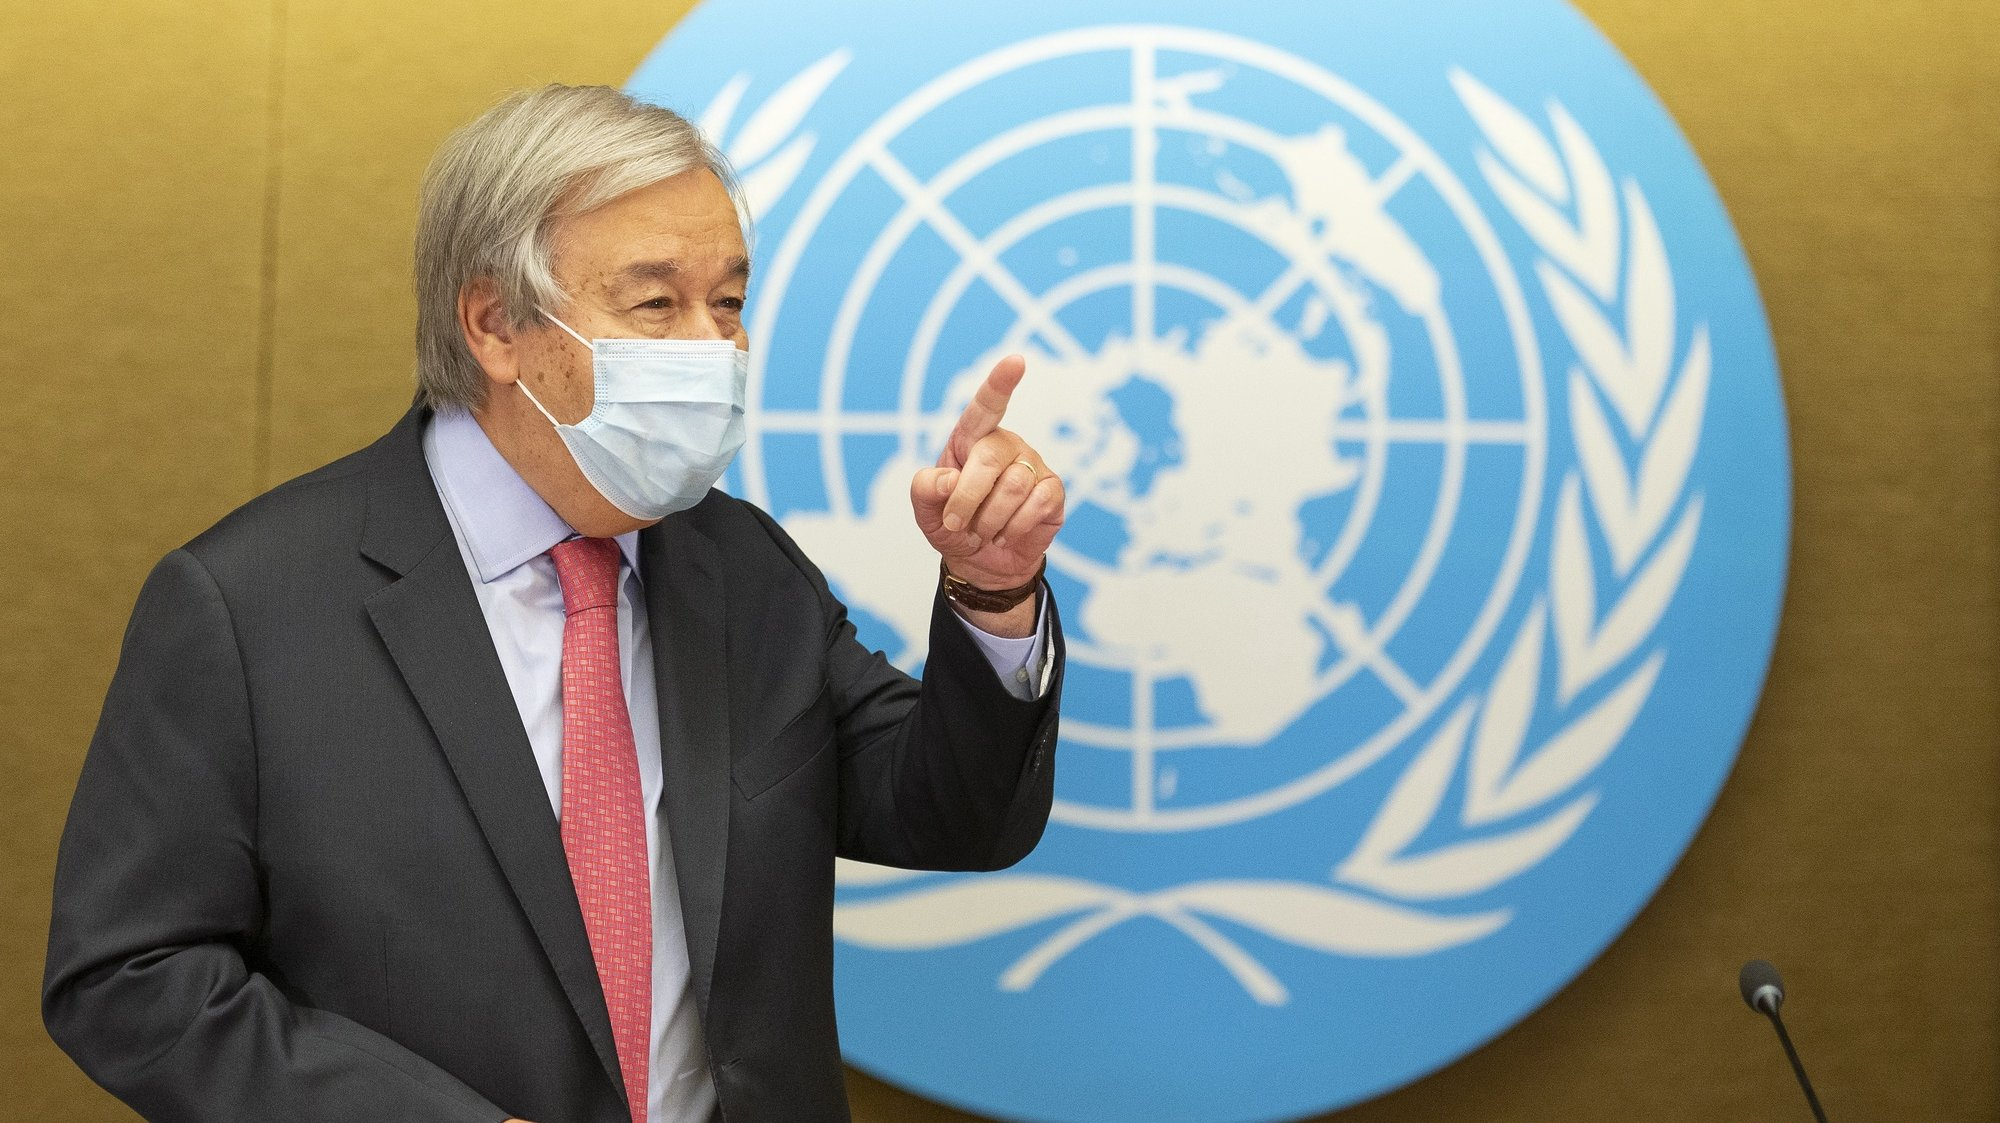 epa09465762 U.N. Secretary-General Antonio Guterres arrives for a press conference, during the High-Level Ministerial Event on the Humanitarian Situation in Afghanistan, at the European headquarters of the United Nation, in Geneva, Switzerland, 13 September 2021.  EPA/SALVATORE DI NOLFI